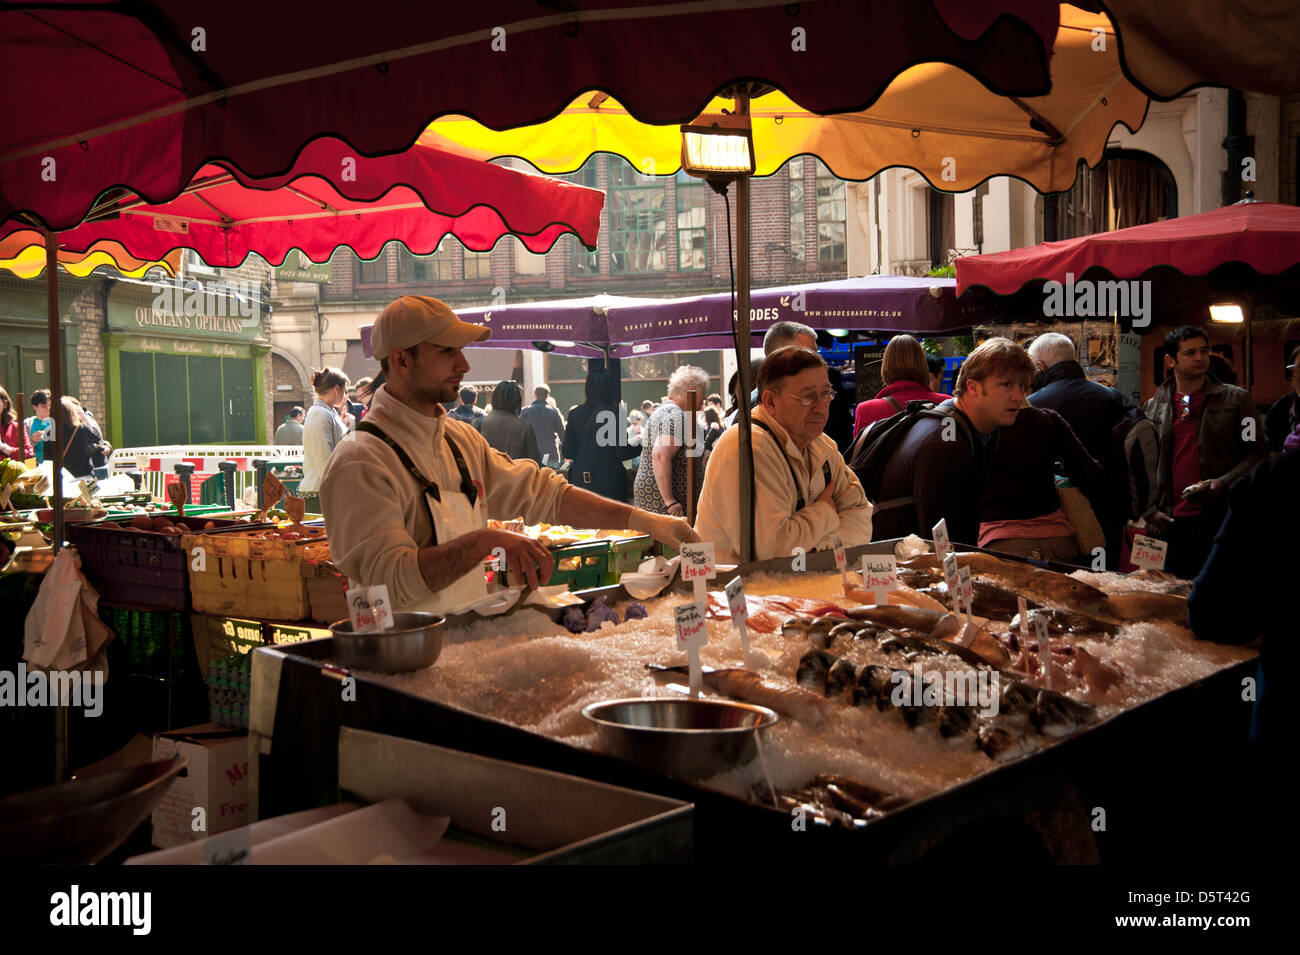 Fishmonger at Borough Farmers Market, London Stock Photo